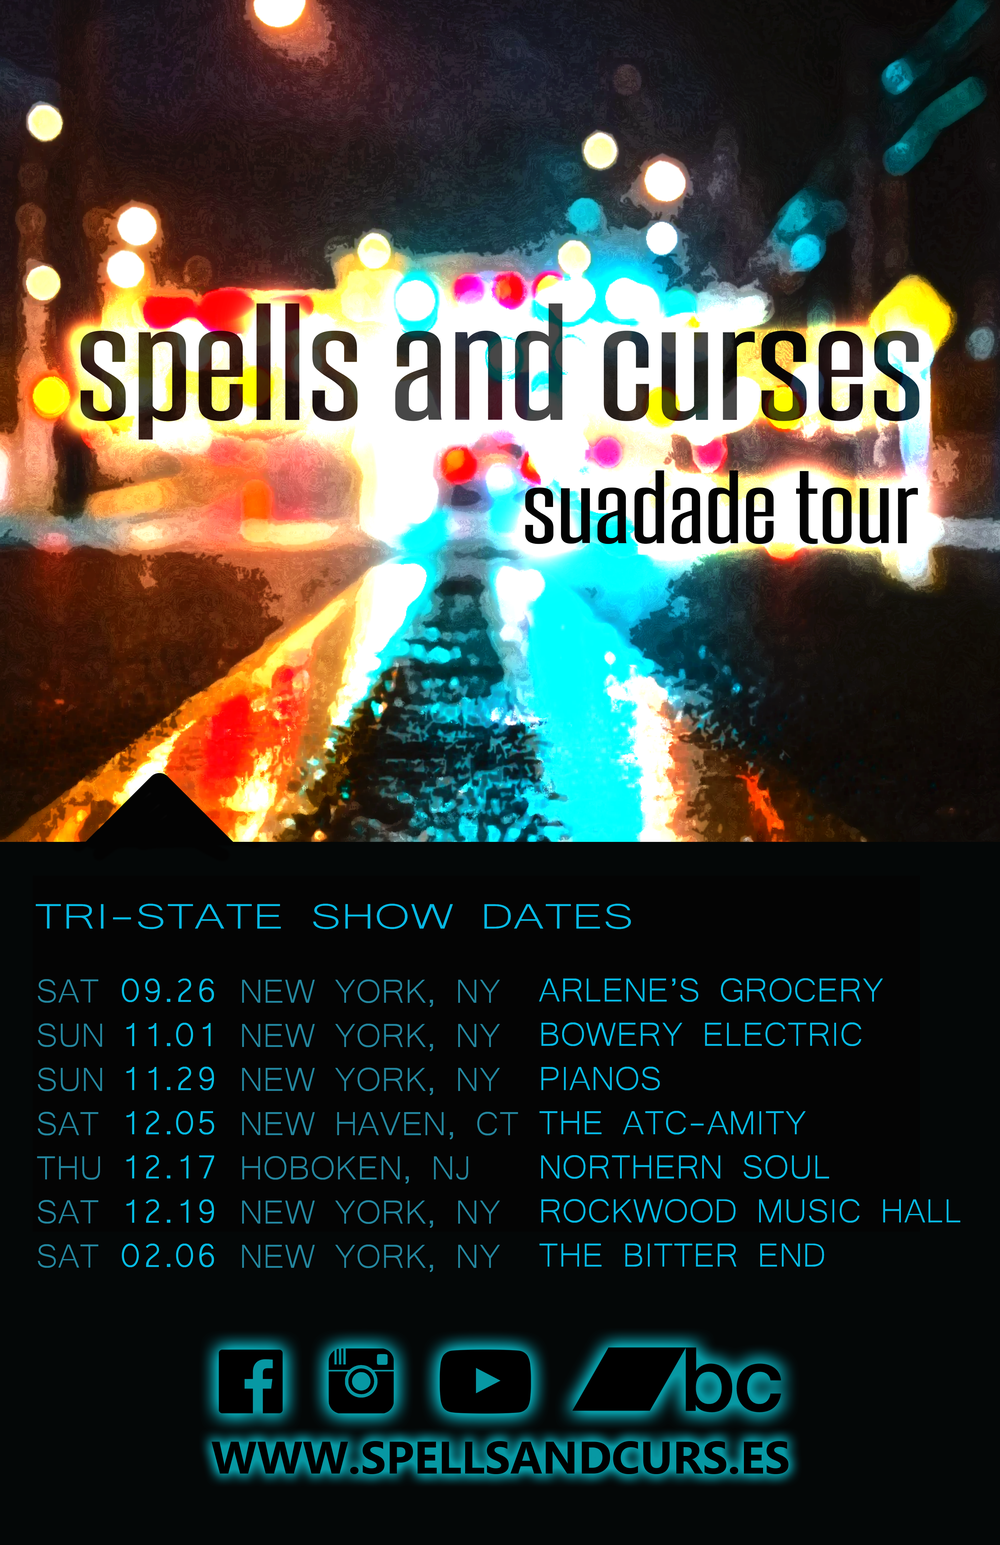 SPELLSANDCURSES-SUADADE-TOUR_UPDATED-12.09.15-copy.png